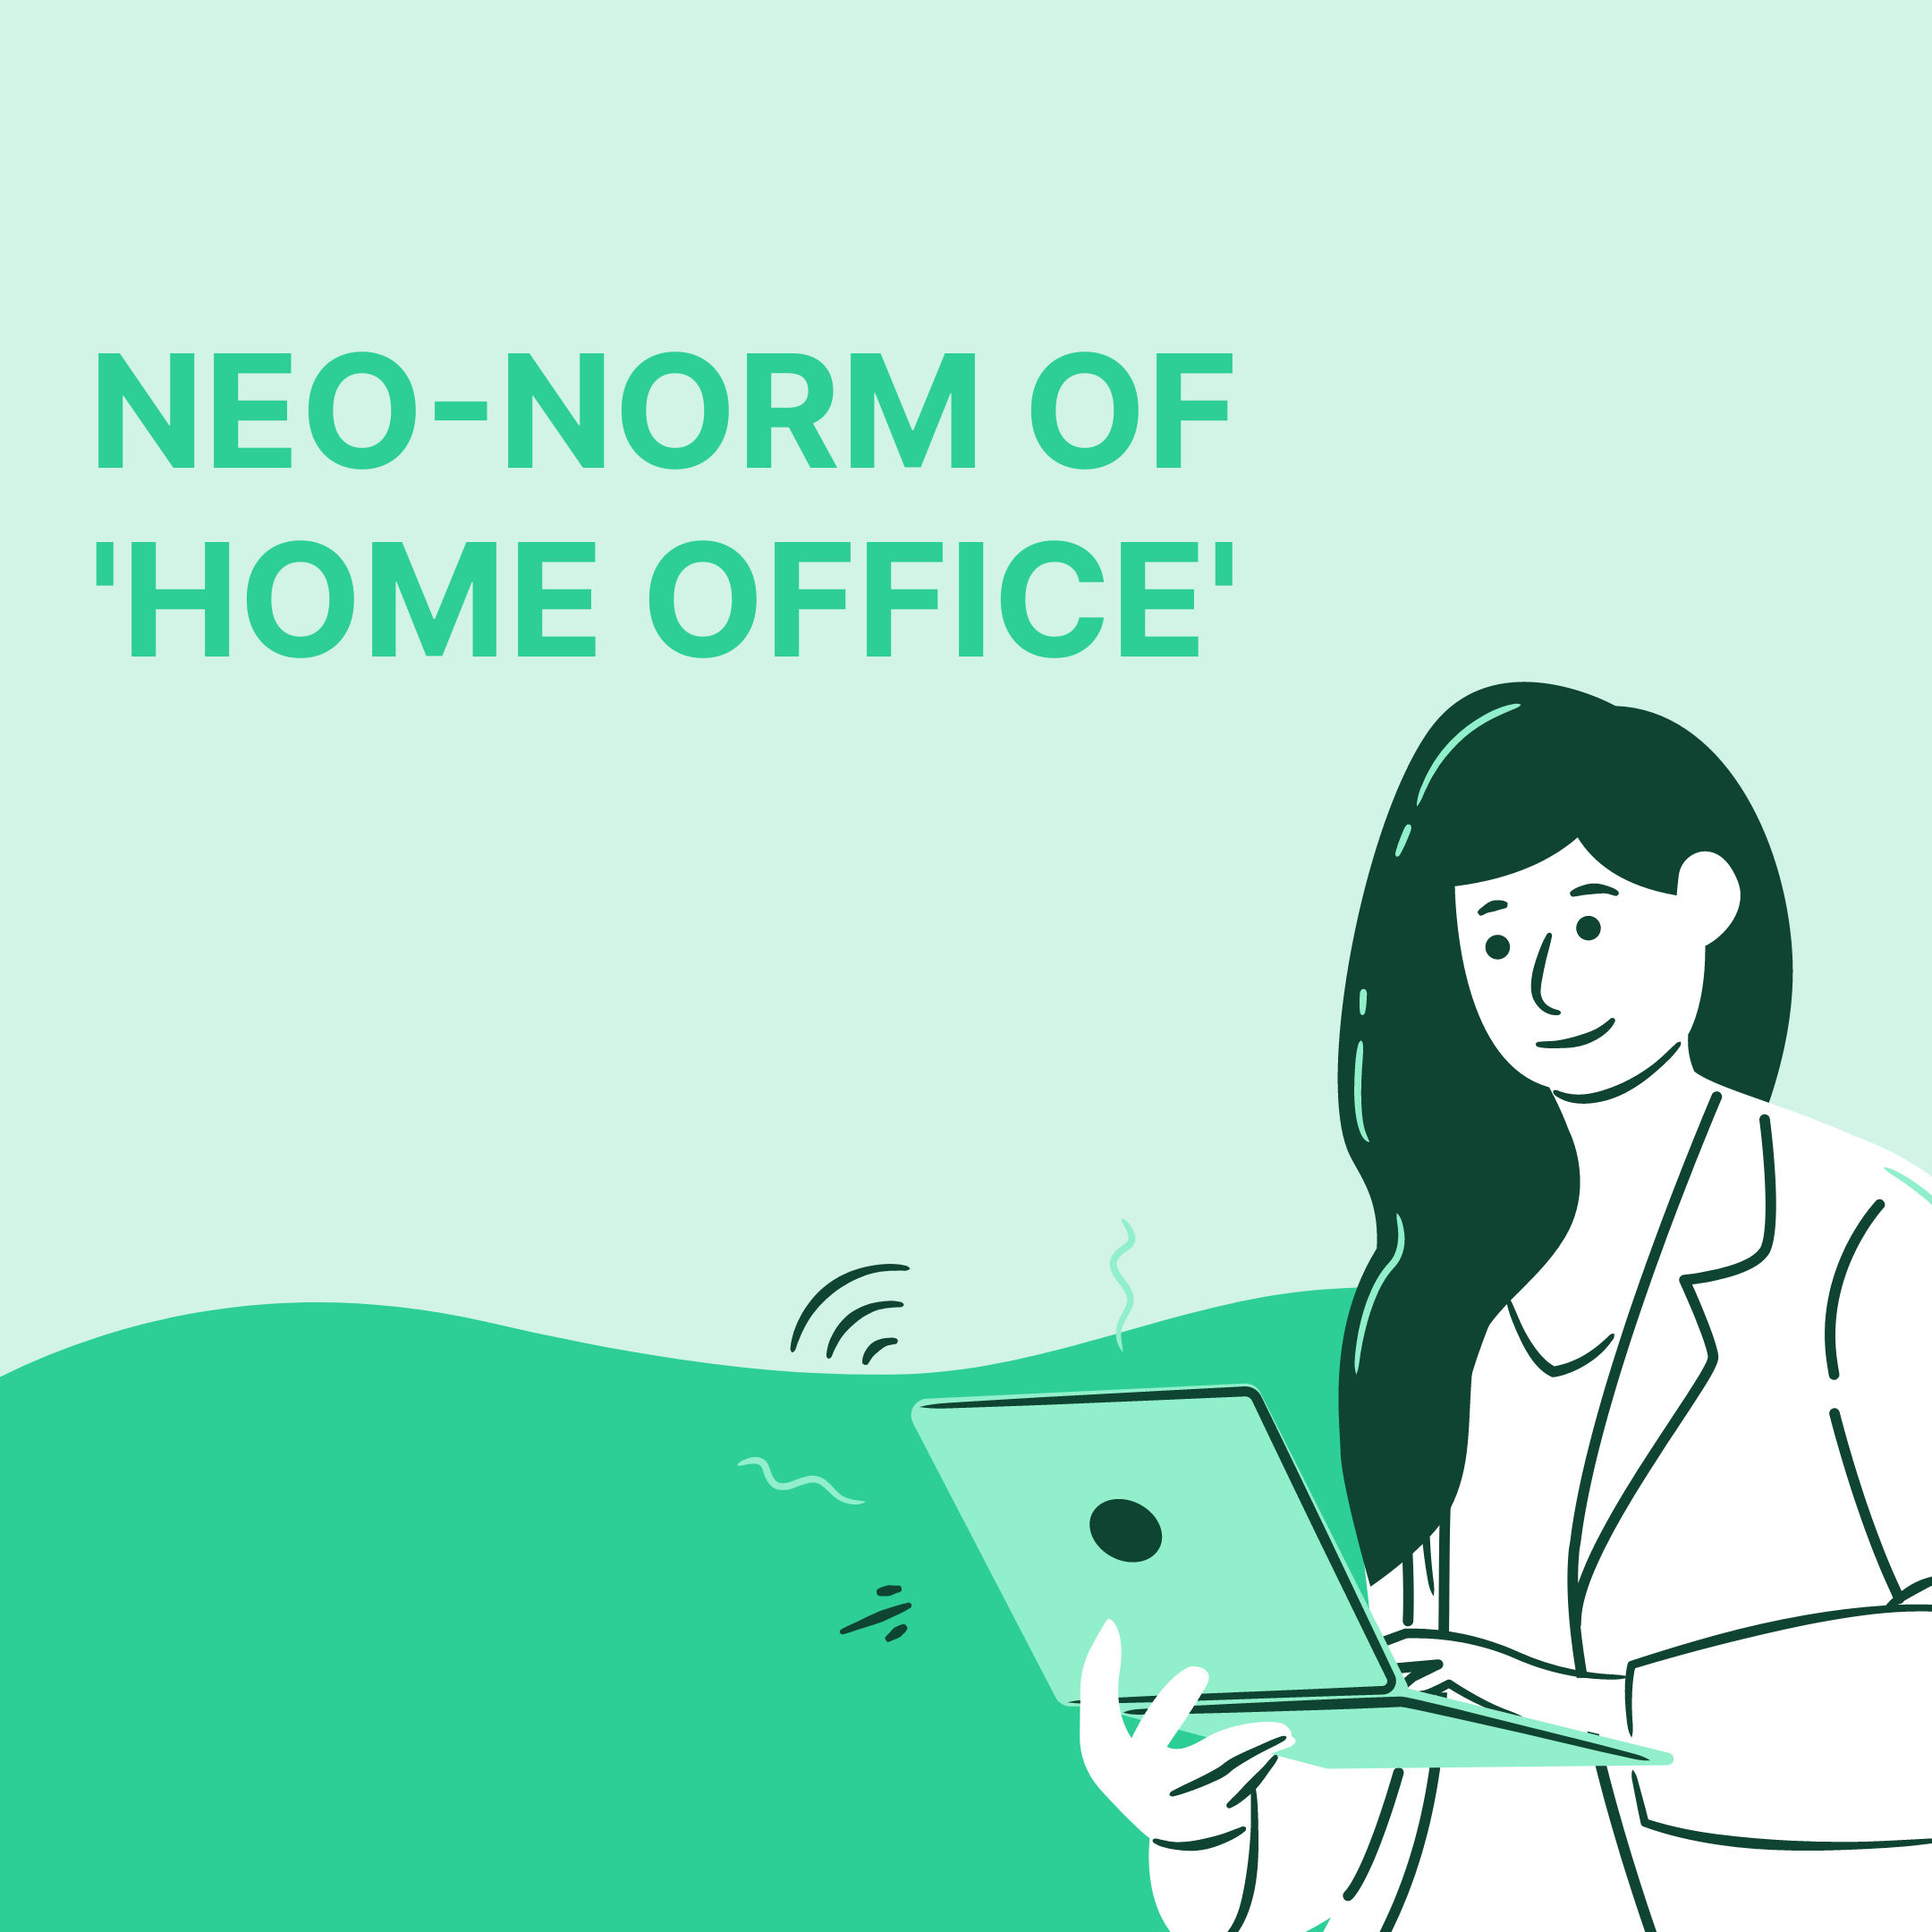 NEO-NORM OF 'HOME OFFICE'